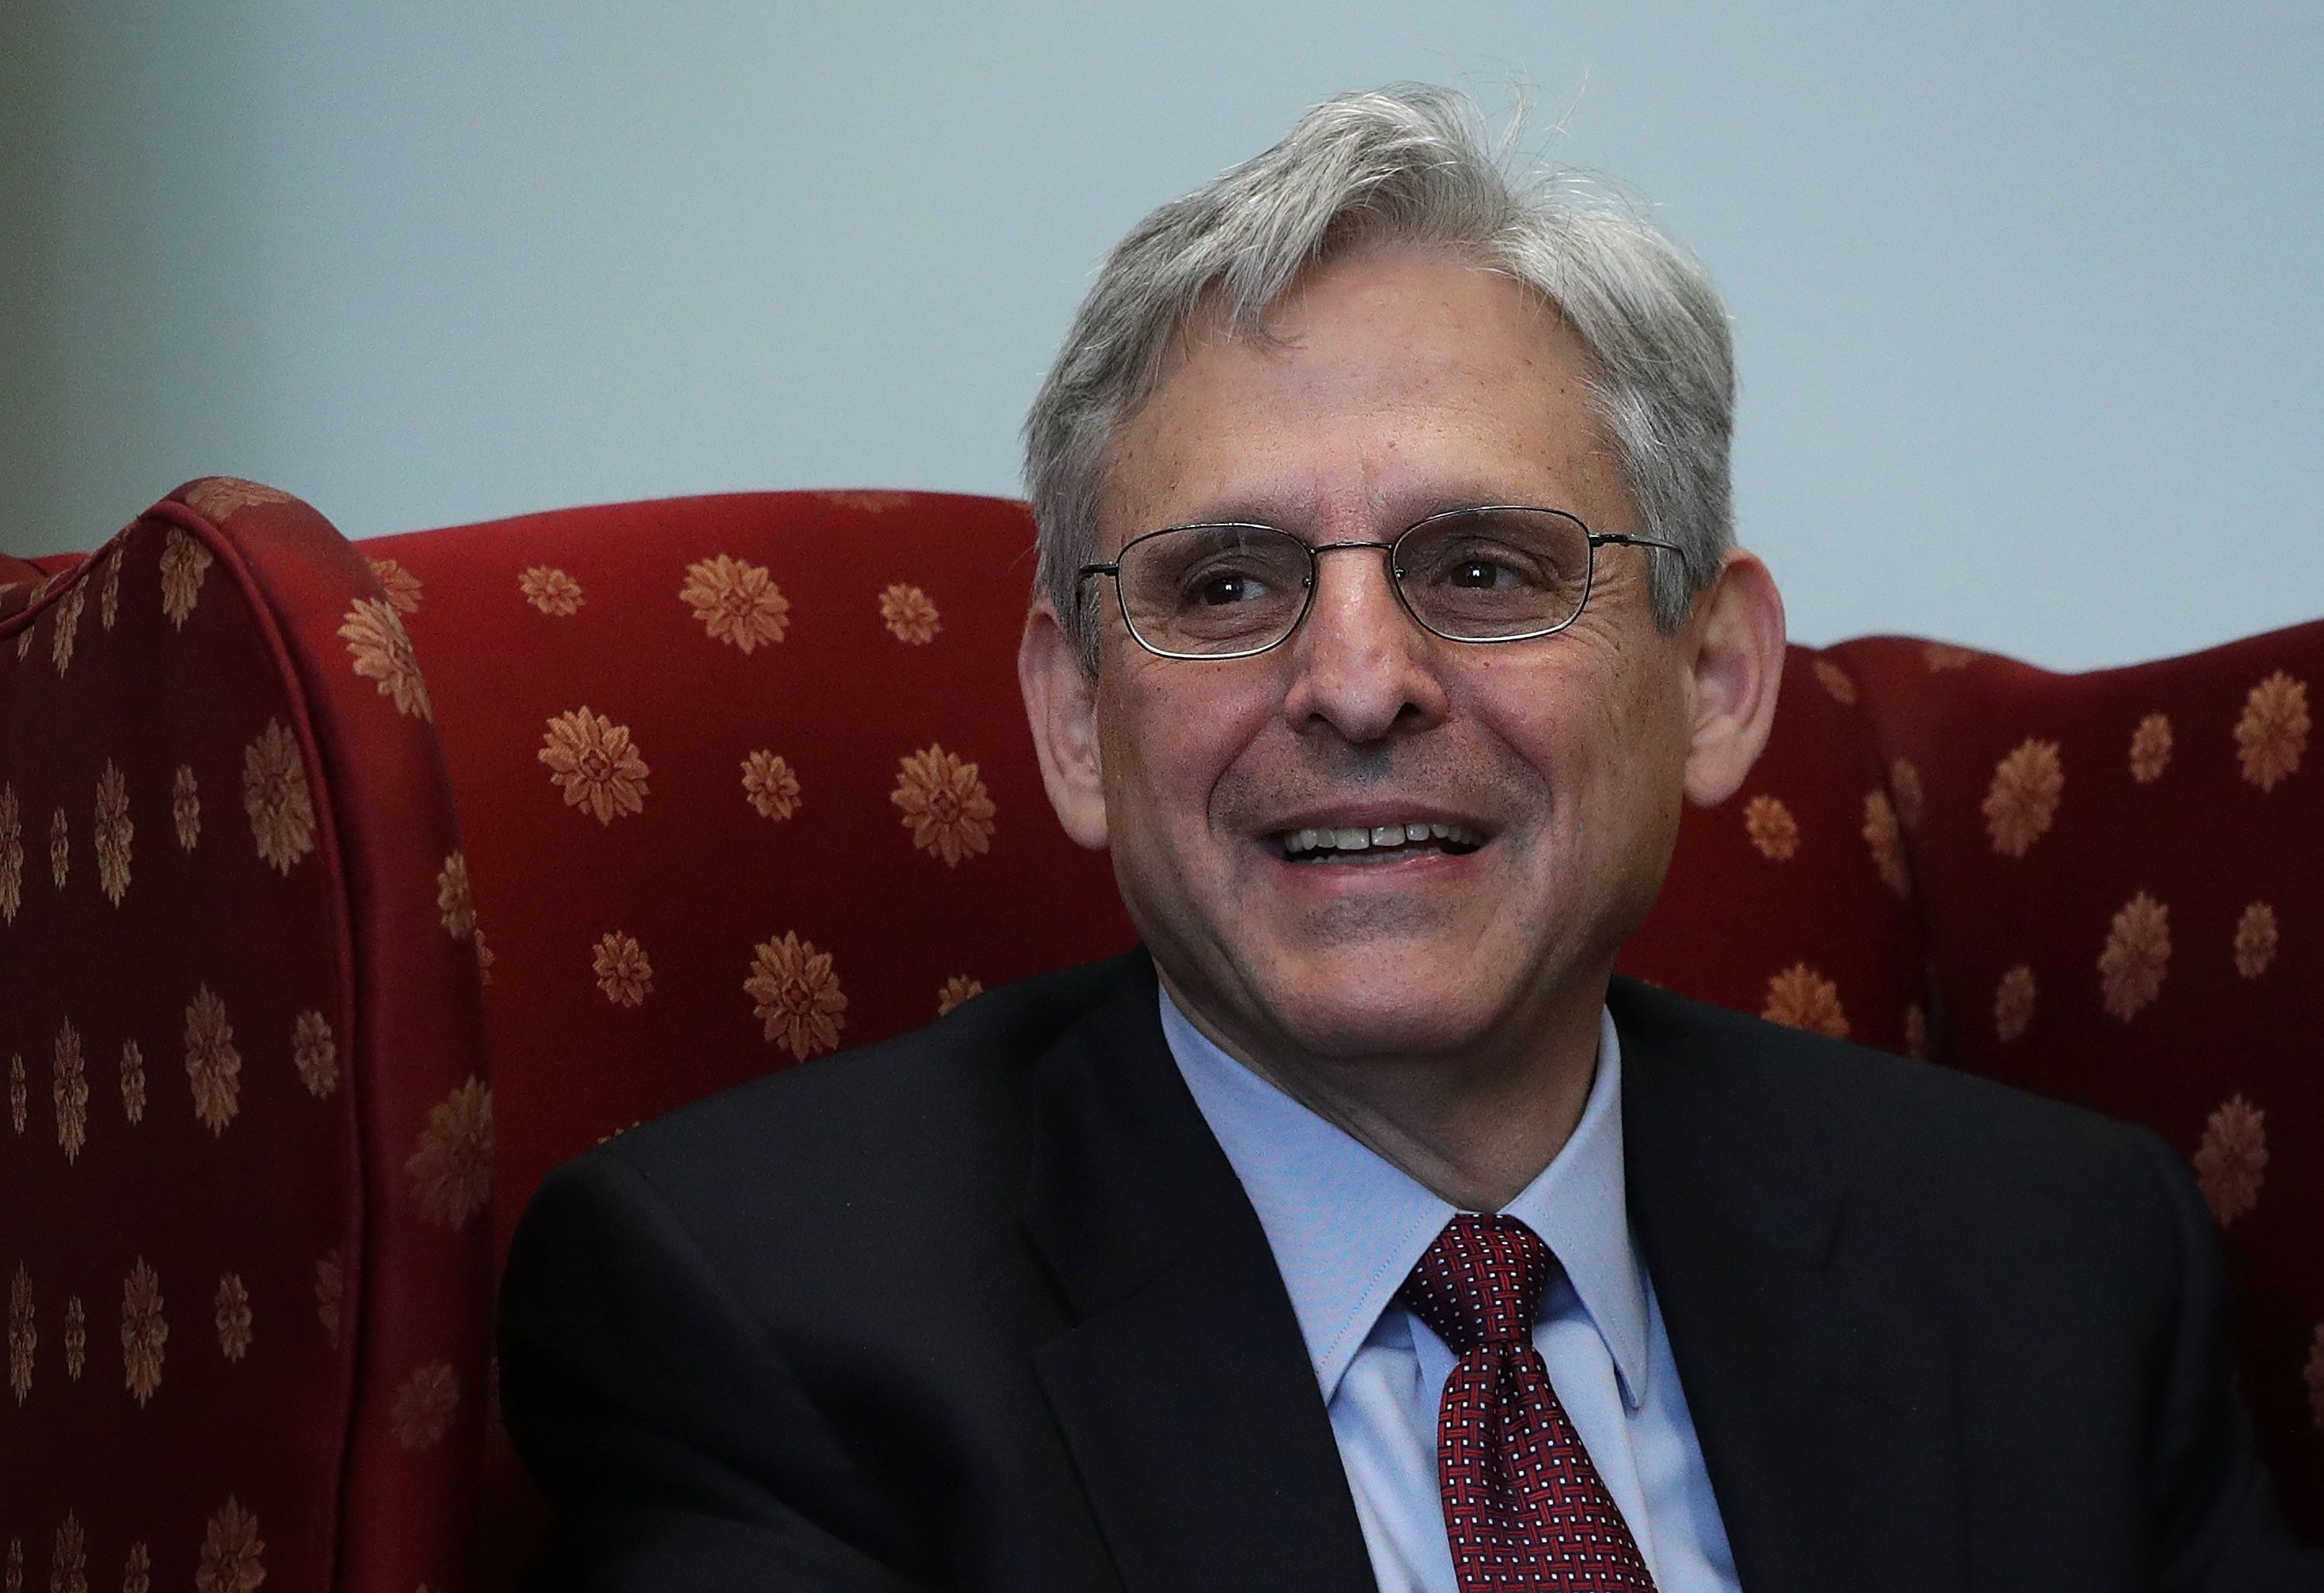 WASHINGTON, DC - APRIL 12:  U.S. Supreme Court nominee Merrick Garland, chief judge of the D.C. Circuit Court, is seen during a meeting with Sen. Cory Booker (D-NJ) April 12, 2016 on Capitol Hill in Washington, DC. Garland continued to visit senators after being nominated by President Barack Obama to succeed the late Justice Antonin Scalia on the high court.  (Photo by Alex Wong/Getty Images)